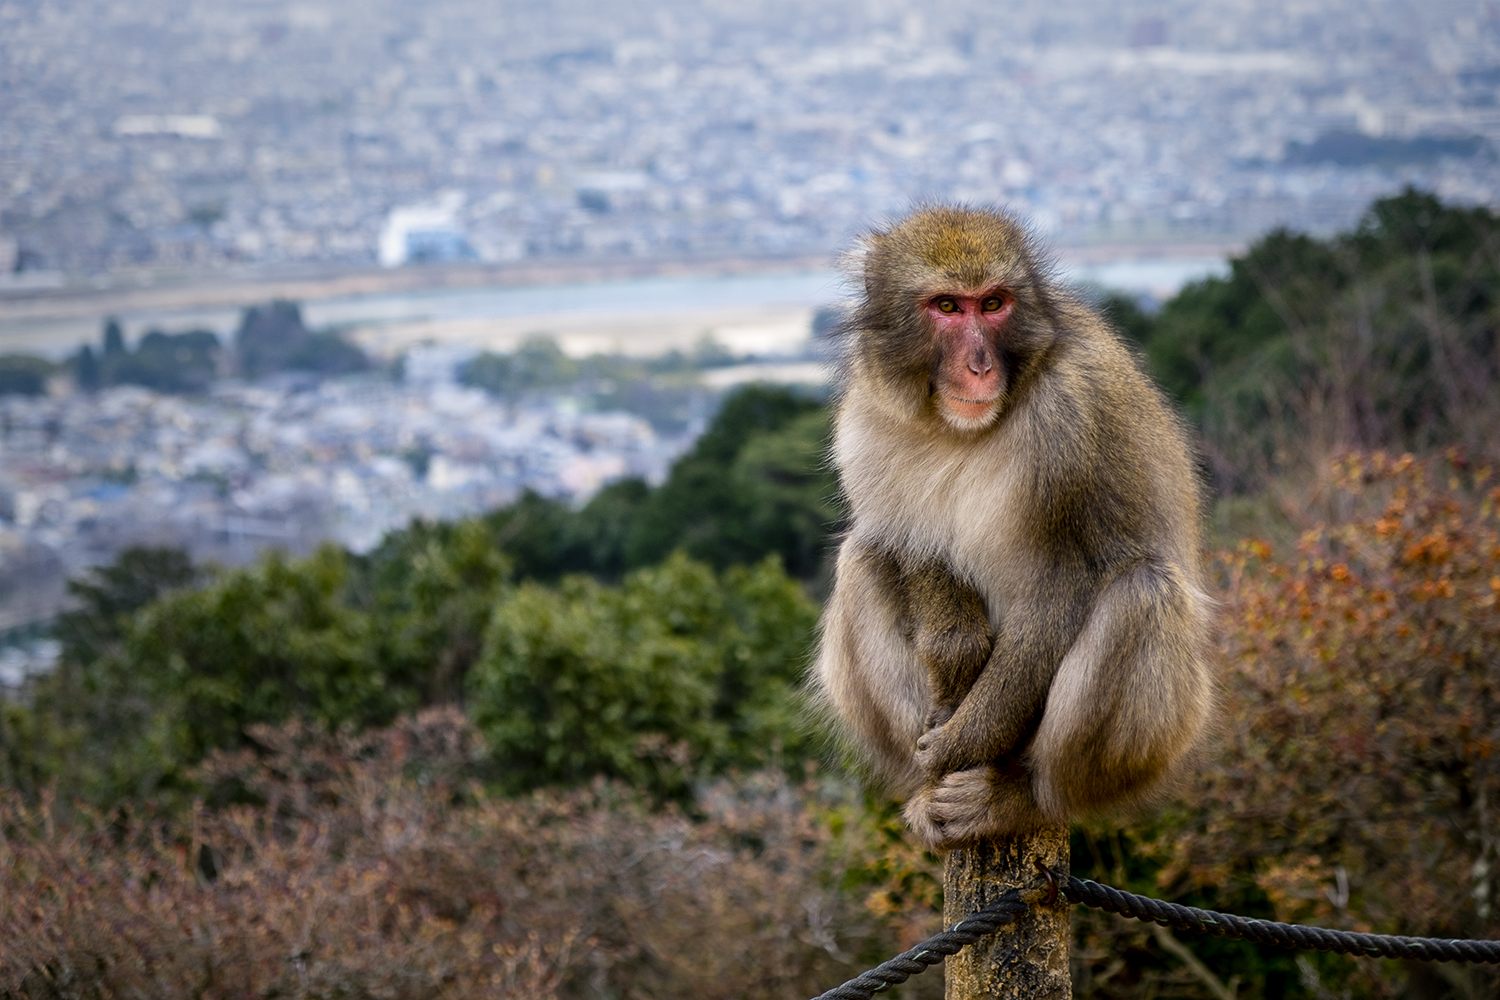 One of the monkeys posing for a quick photo.